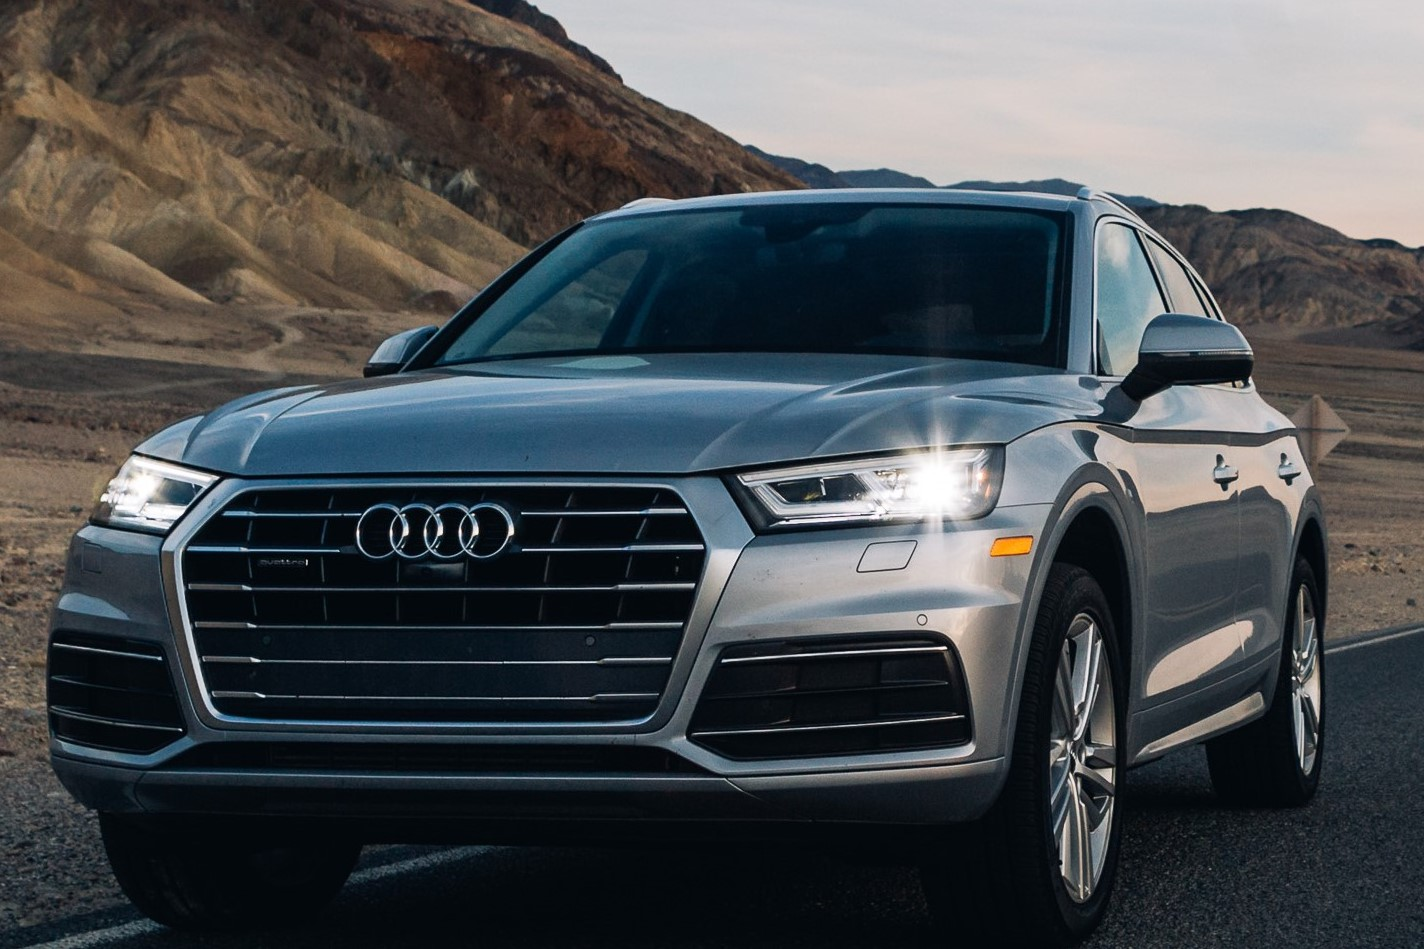 What Are The Design Performance Features Of The Audi Vehicles In - Audi vehicles